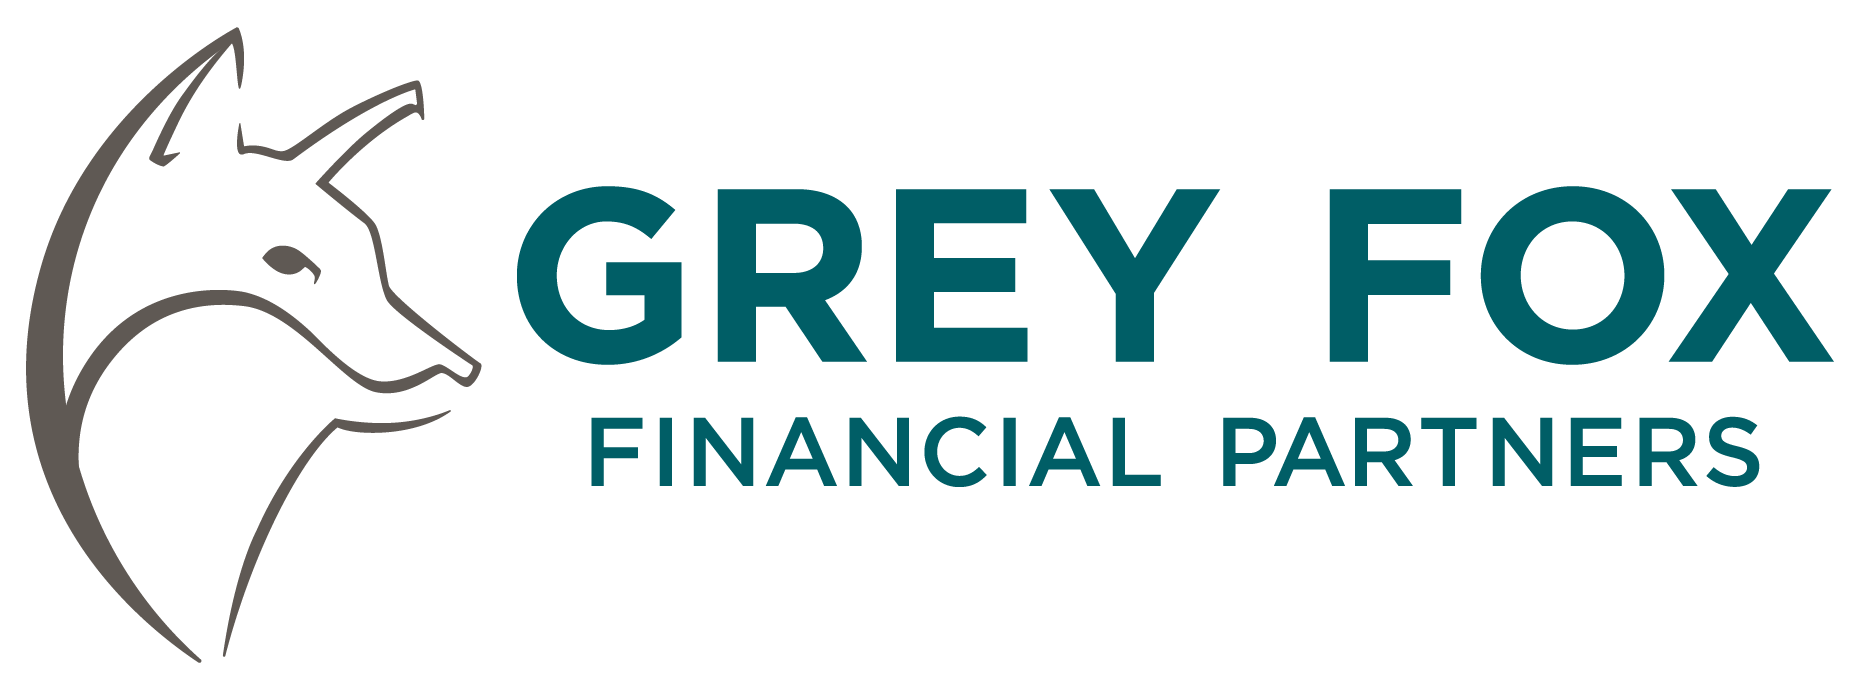 Grey Fox Financial Partners